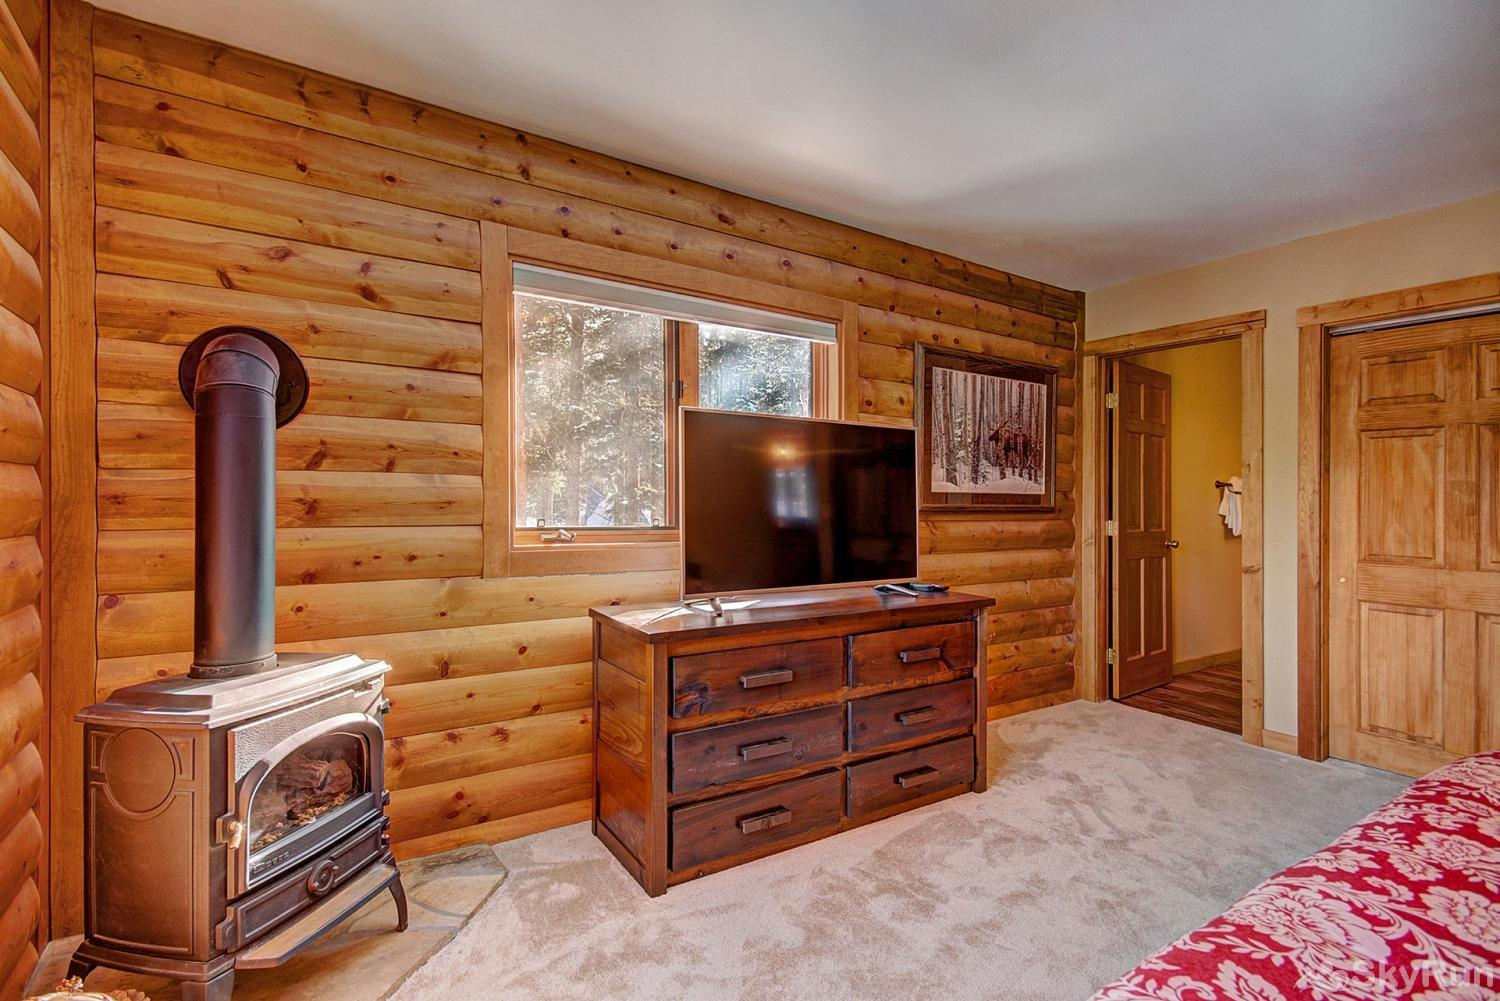 The Sly Fox Hideaway Main level king bedroom with fireplace, TV, ensuite bath